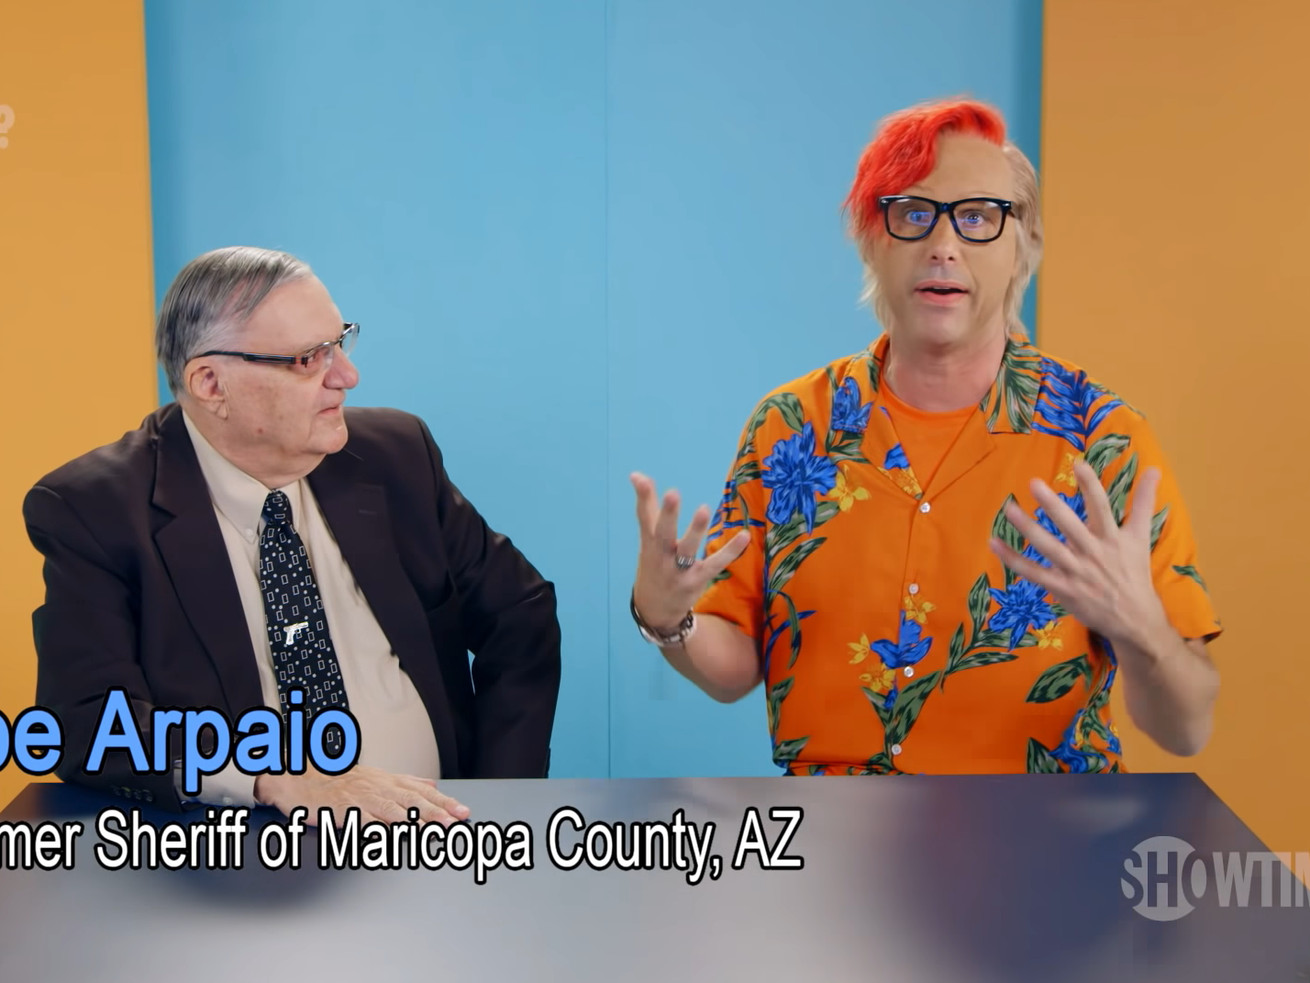 Joe Arpaio meets Sacha Baron Cohen's YouTube unboxing character OMGWhizzBoyOMG.